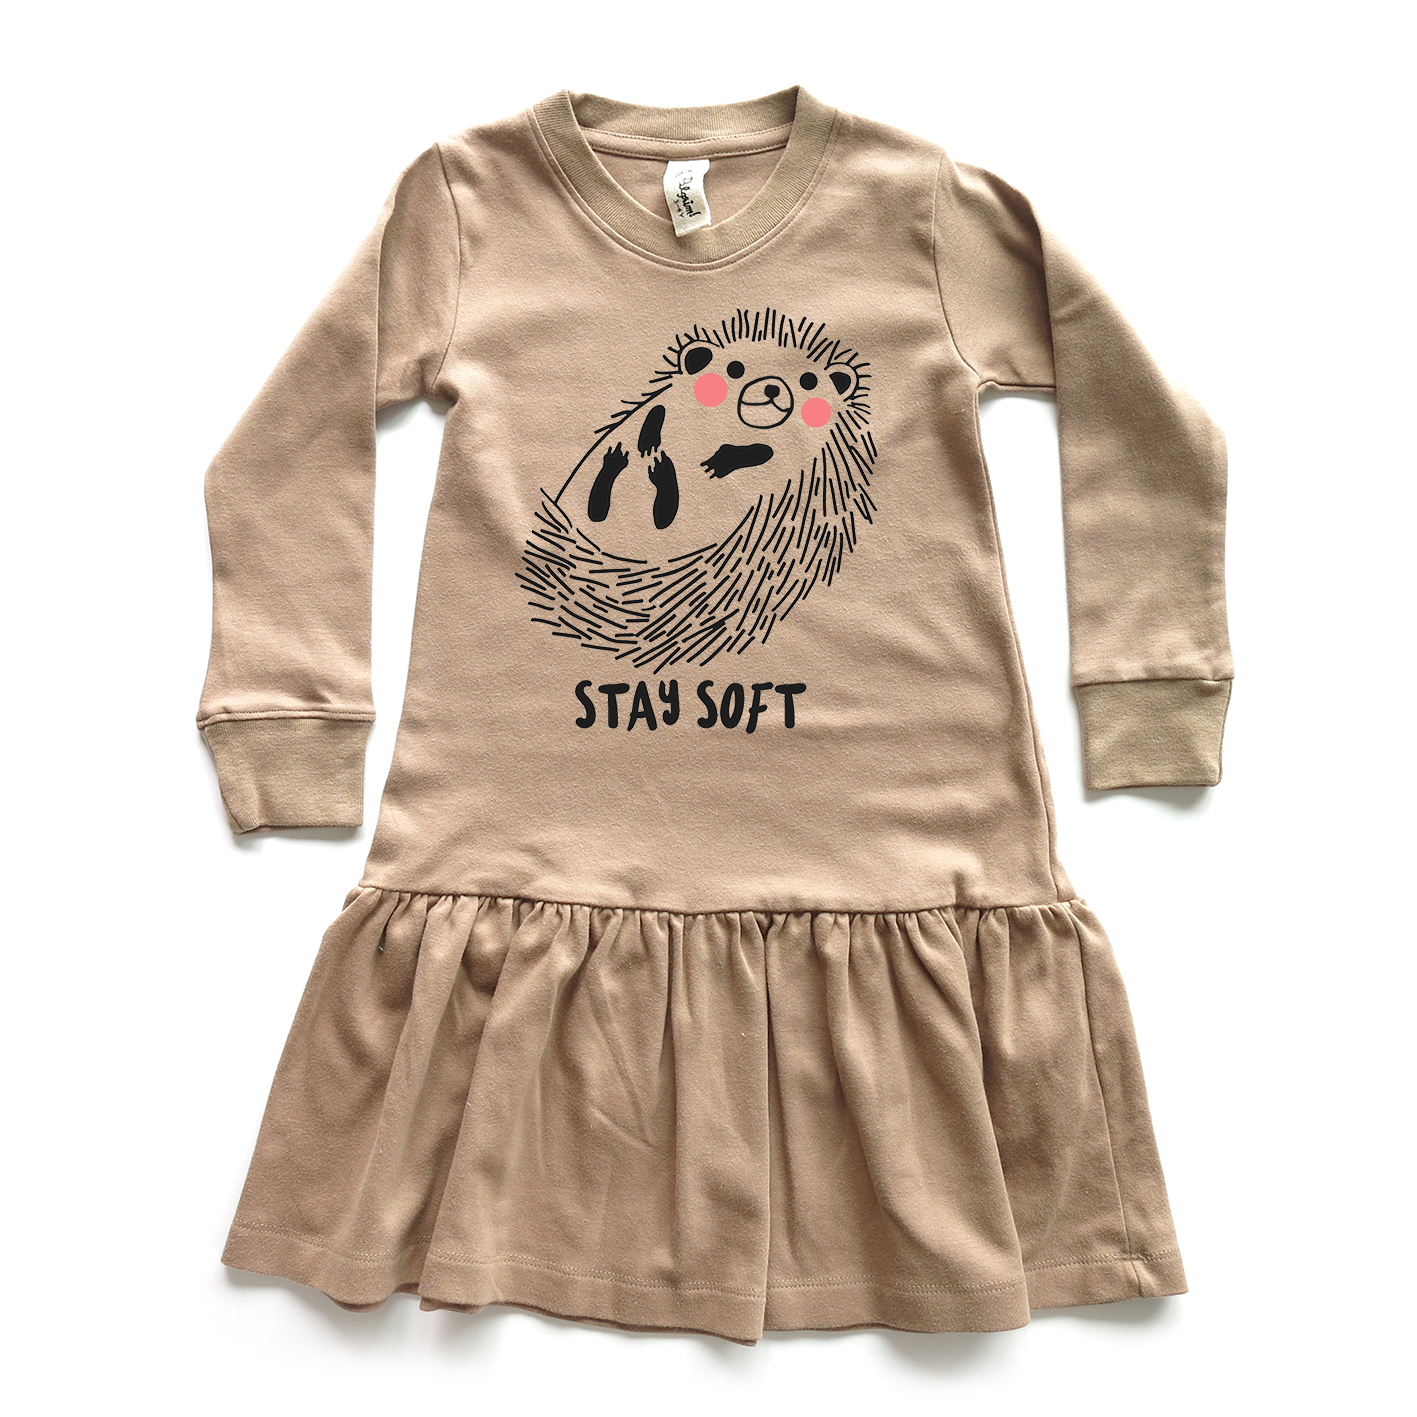 GIRL DRESS 1-7Y. LP0627 STAY SOFT DRESS WITH RUFFLED